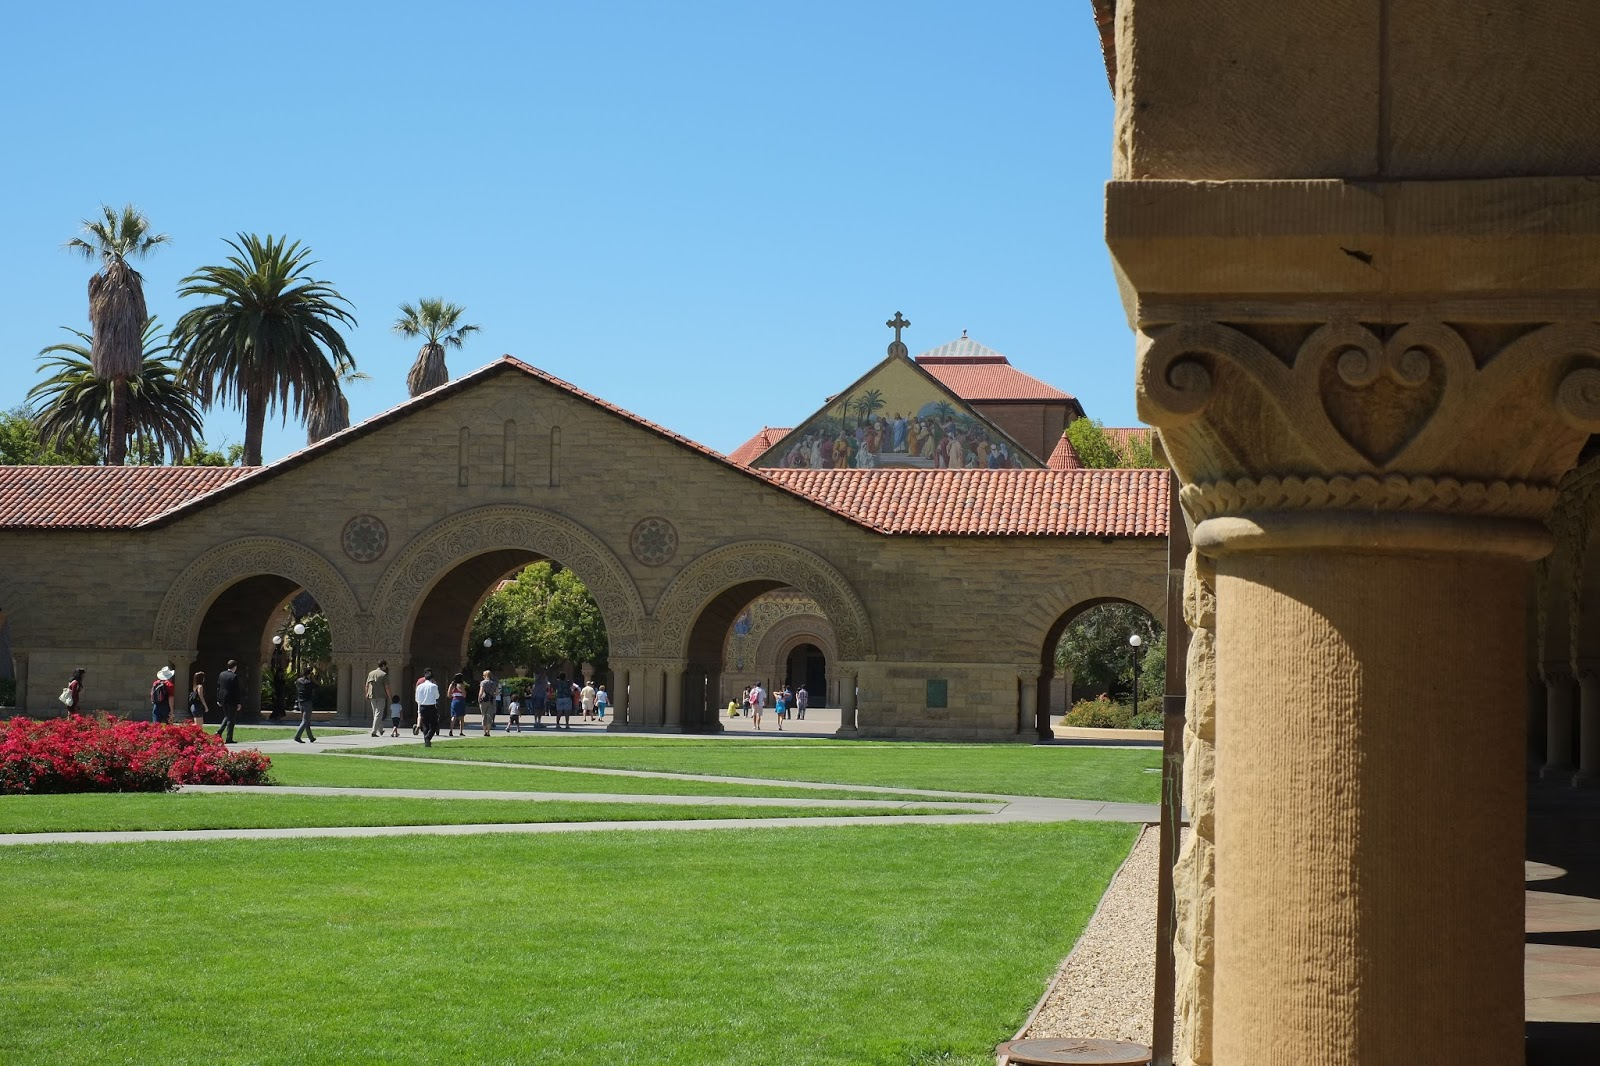 Do summer programs at prestigious universities help with getting into college?